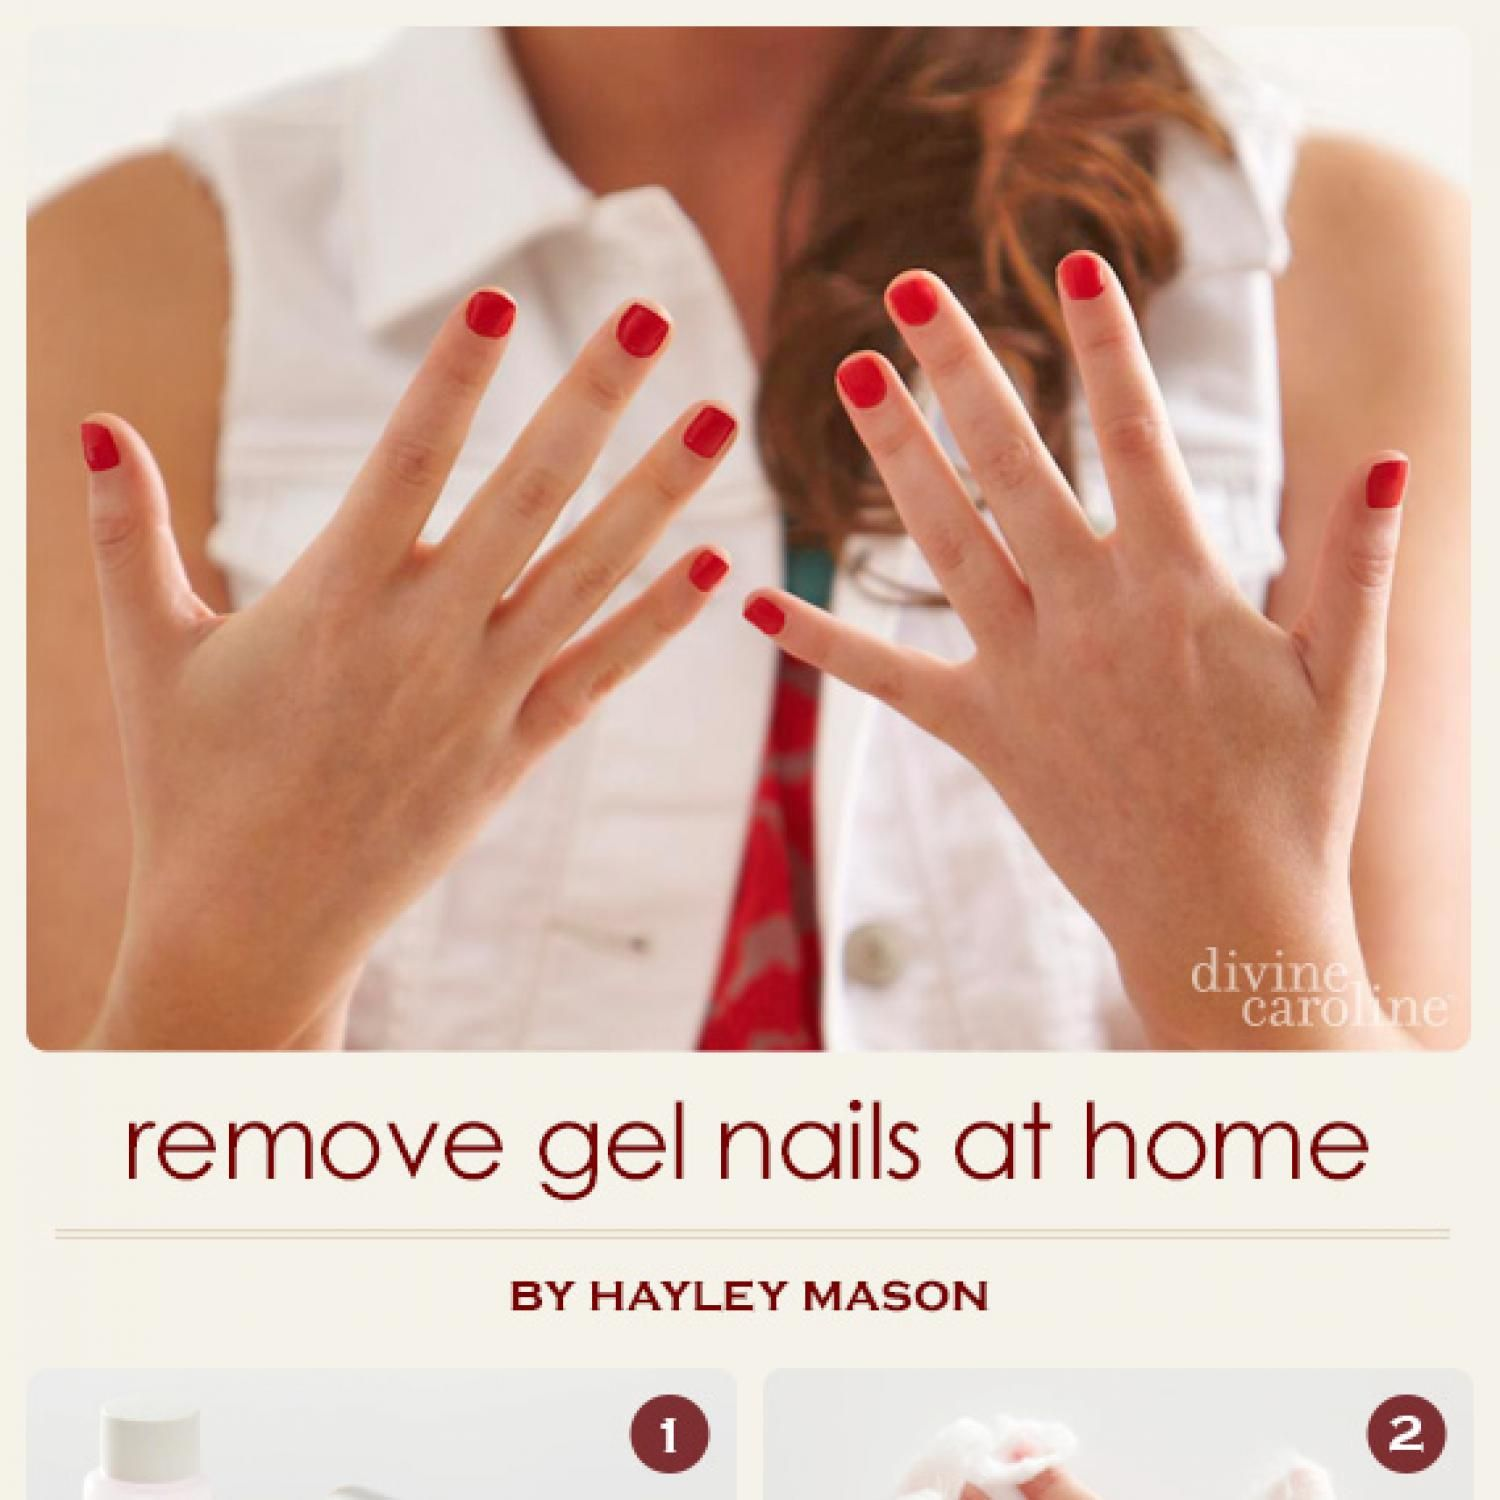 Here at the divinecaroline offices we love a good gel polish how to remove gel nails at home without killing your nails just tried this w nailpolish remover w acetone on one hand and it does work but takes longer solutioingenieria Choice Image